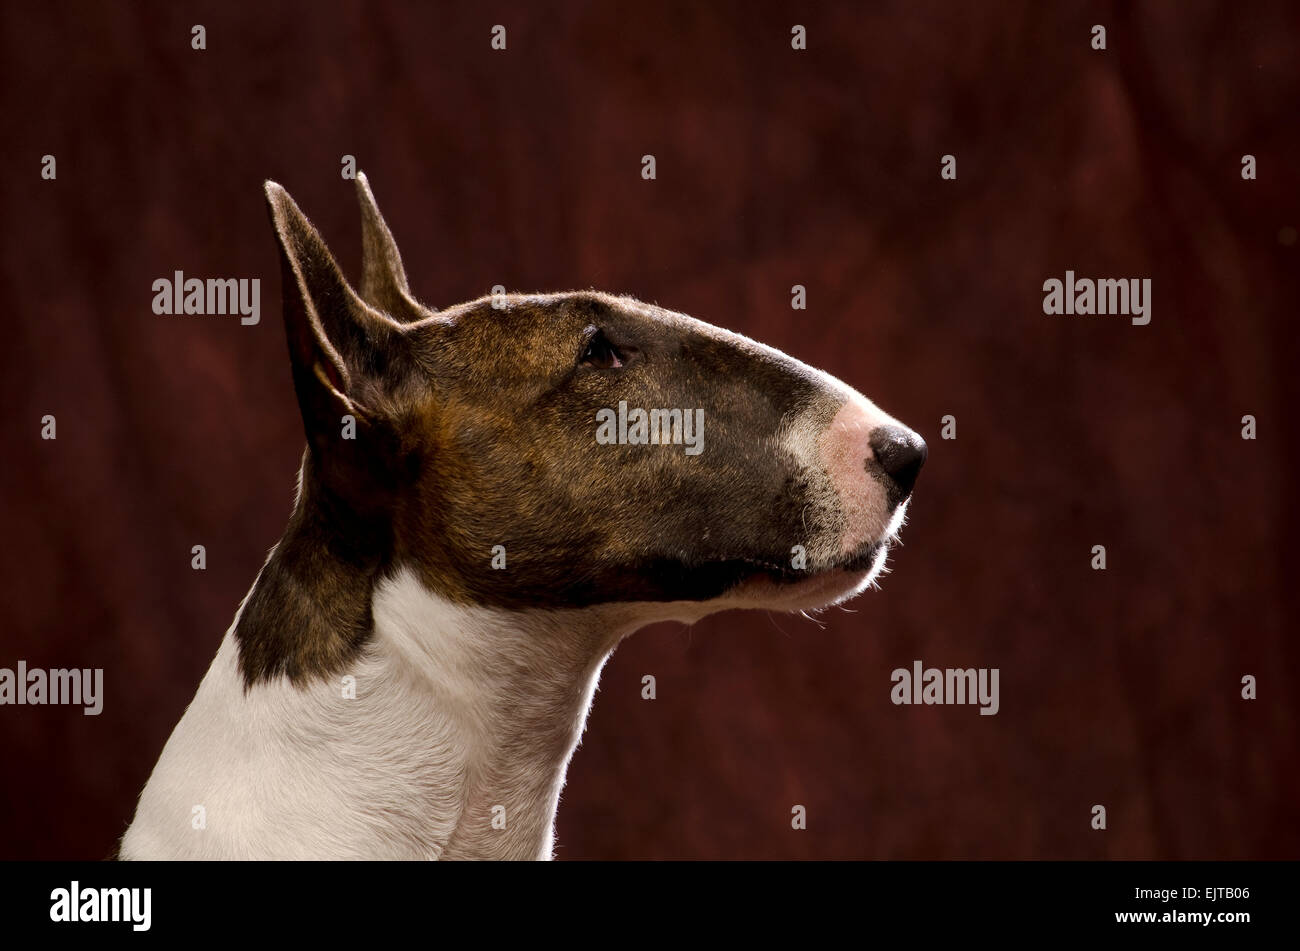 profile head shot of a bull terrier - Stock Image